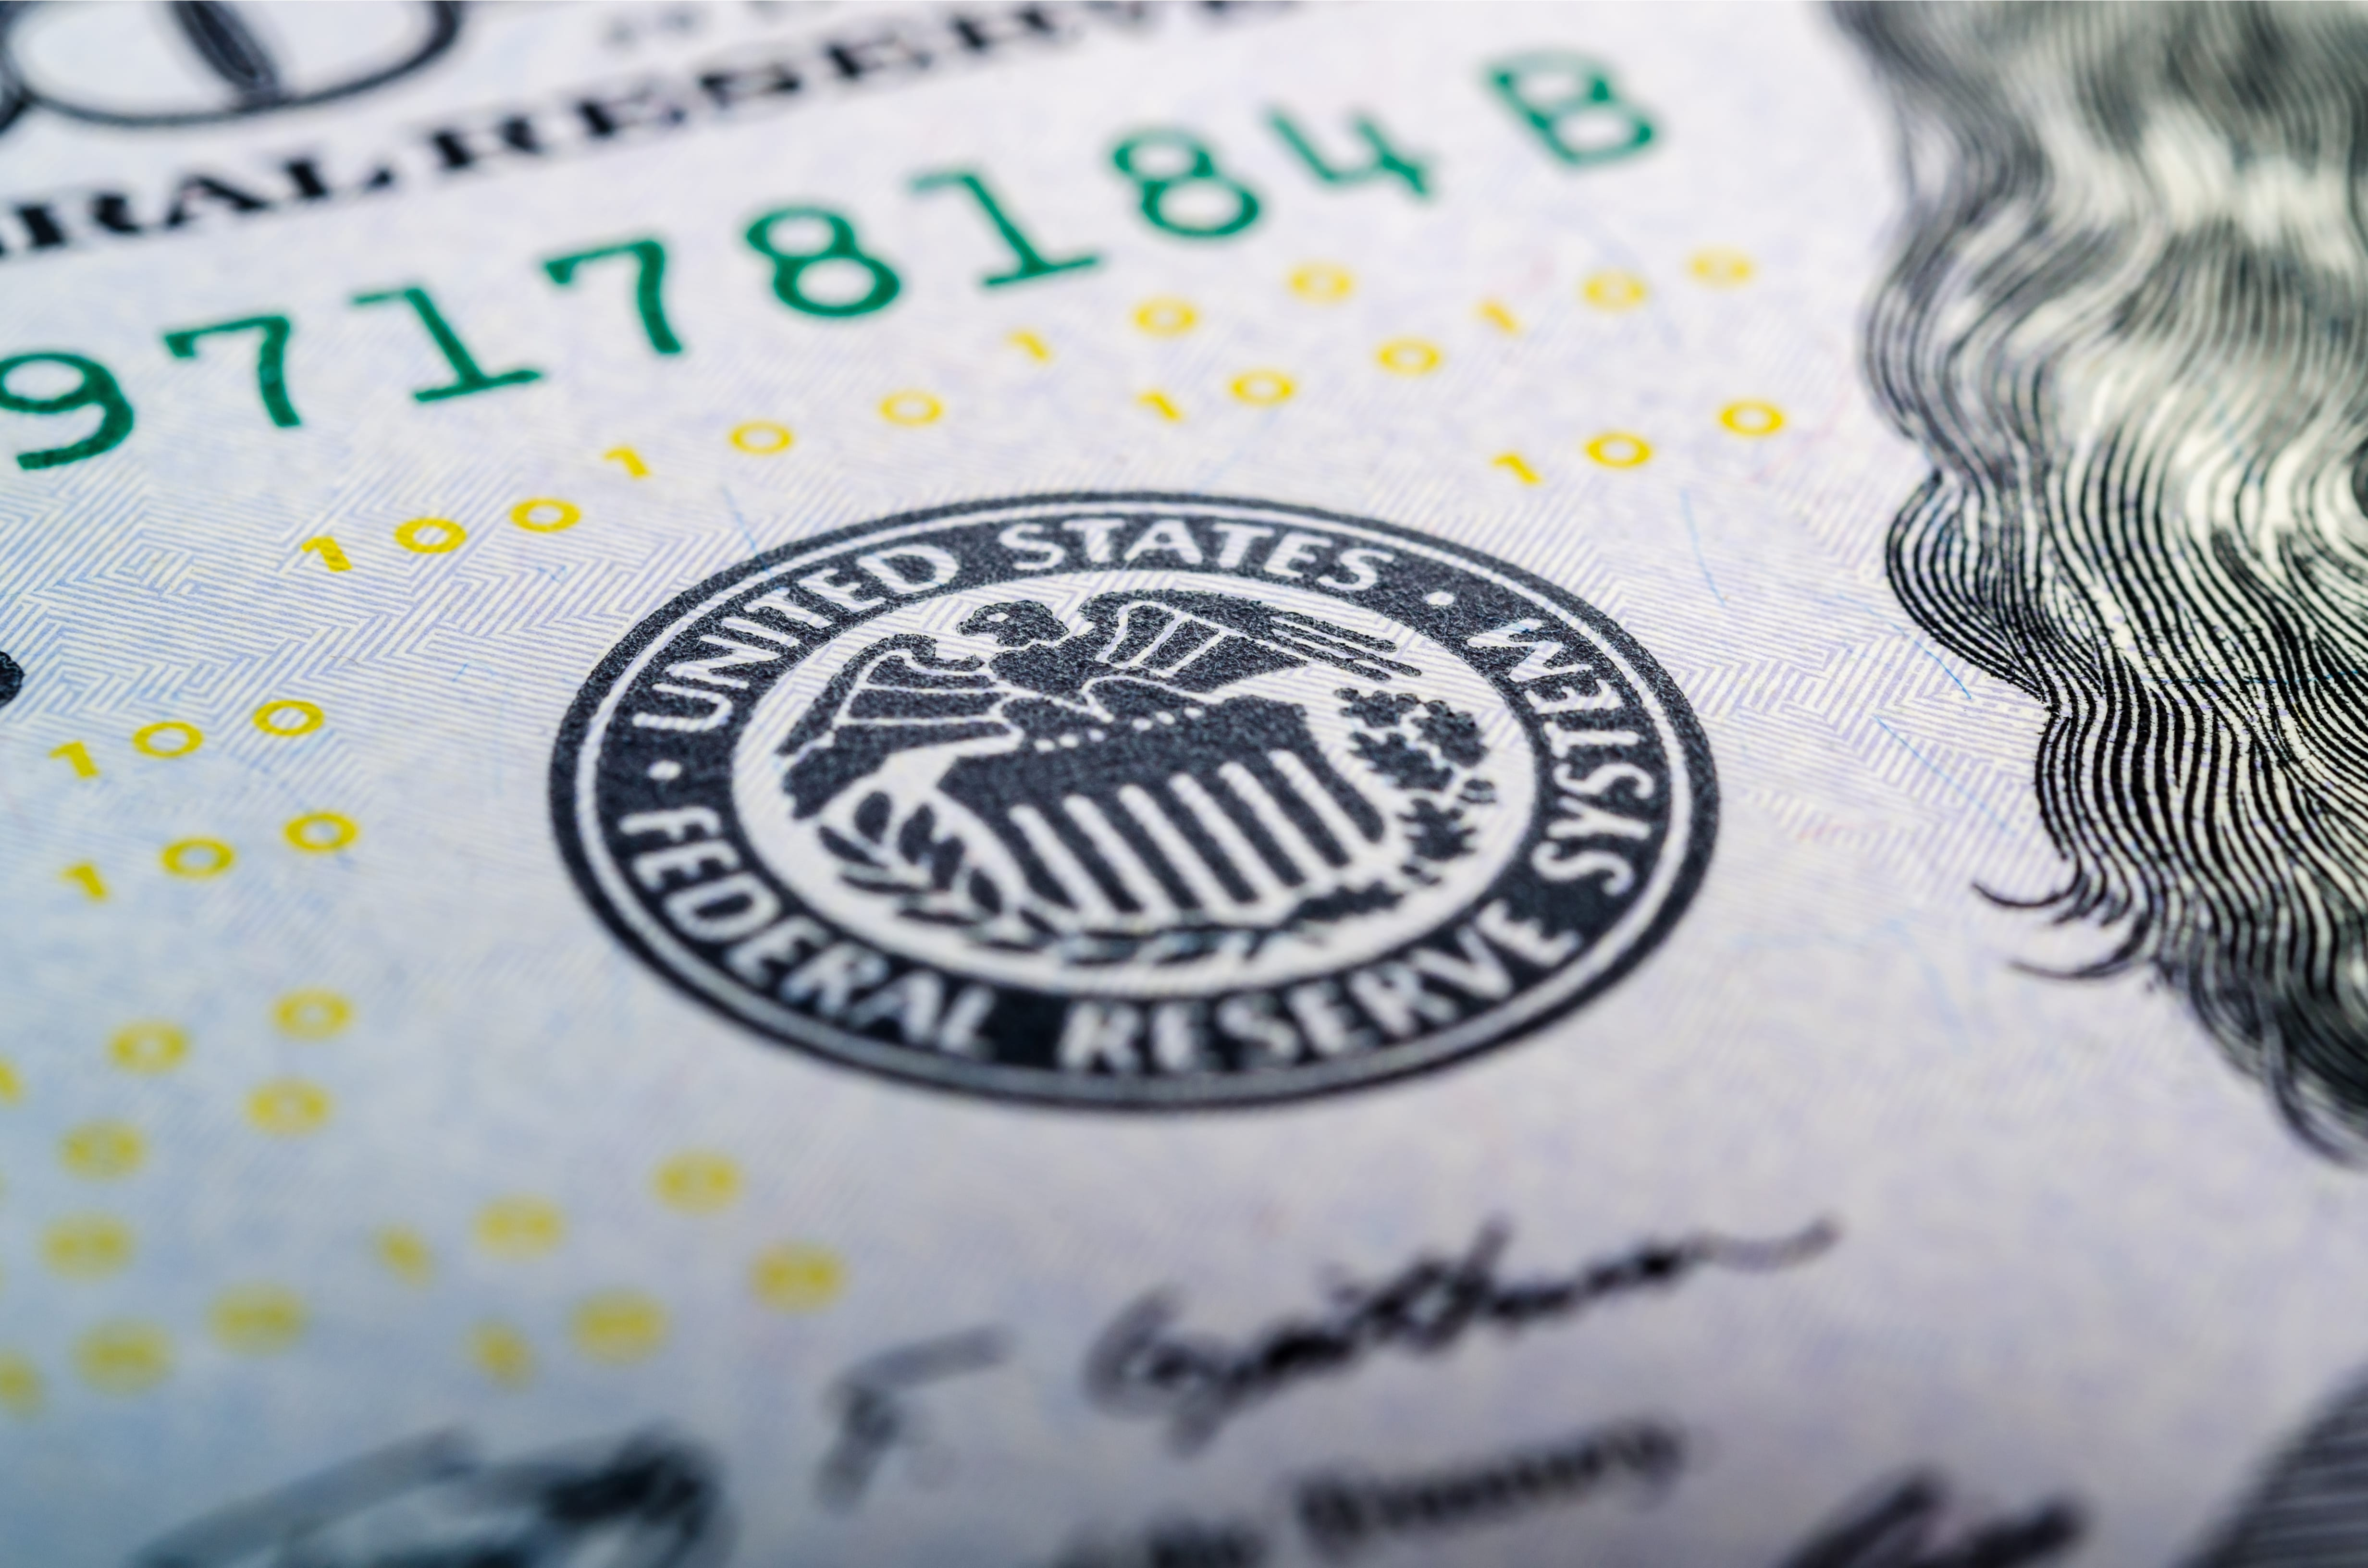 Fed Will Help Support The Continued Flow Of Credit To Homes And Businesses